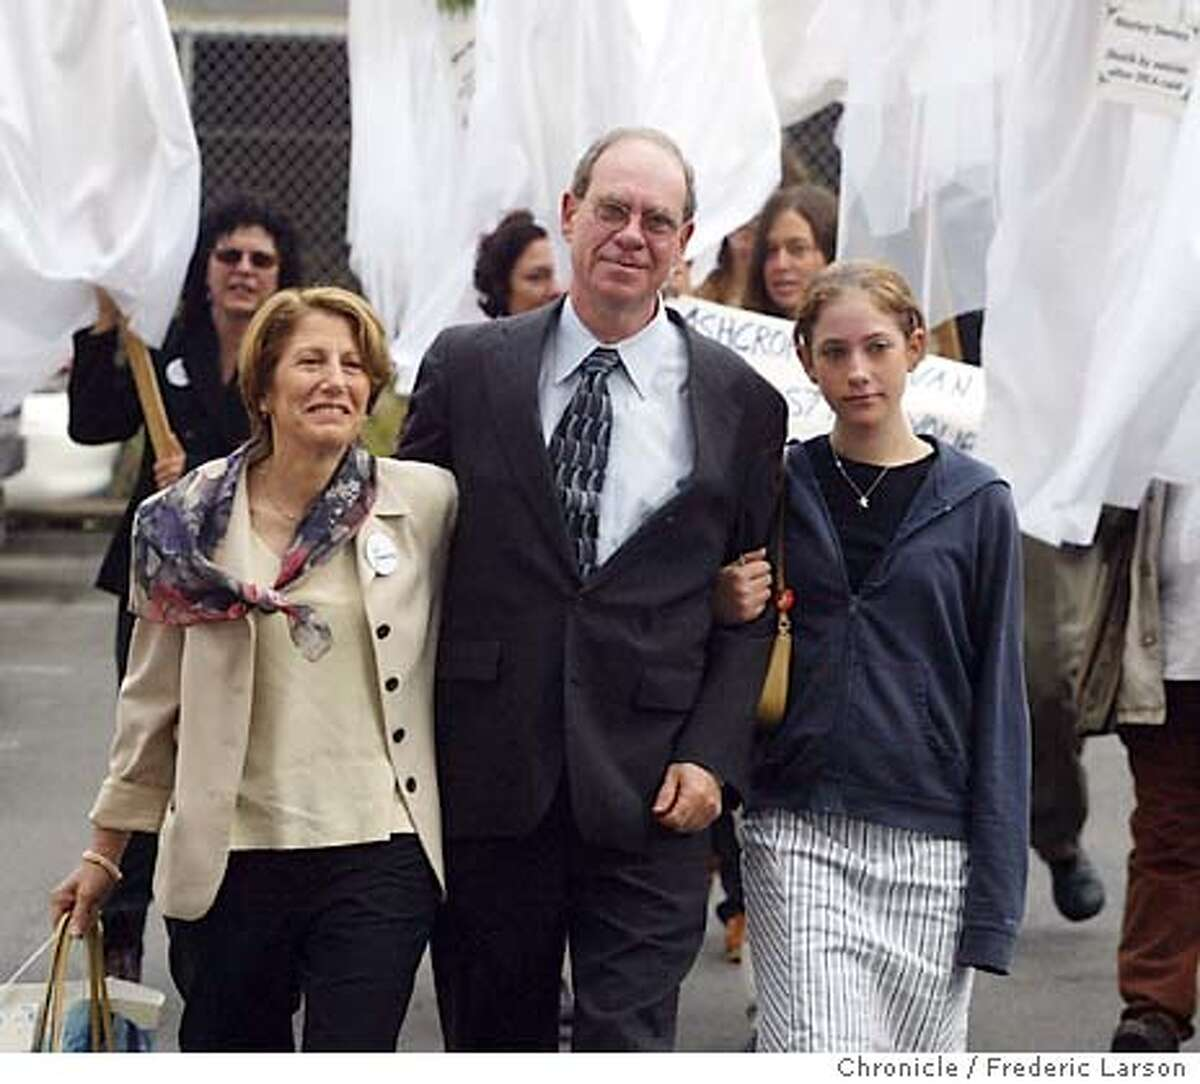 Medical marijuana advocate Ed Rosenthal along with his wife Jane Klein (left) and his daughter Justine Rosenthal (12) walked into the Federal courthouse at 450 Golden Gate Ave in SF, where he will be sentenced on federal cultivation charges. Mr. Rosenthal went to trial in federal court in SF on charges of marijuana cultivation and conspiracy. The charges stem from a business he ran growing marijuana to be sold for medicinal uses under the auspices of the City of Oakland's medical marijuana ordinance, one of many such municipal statutes in California. FREDERIC LARSON / The Chronicle